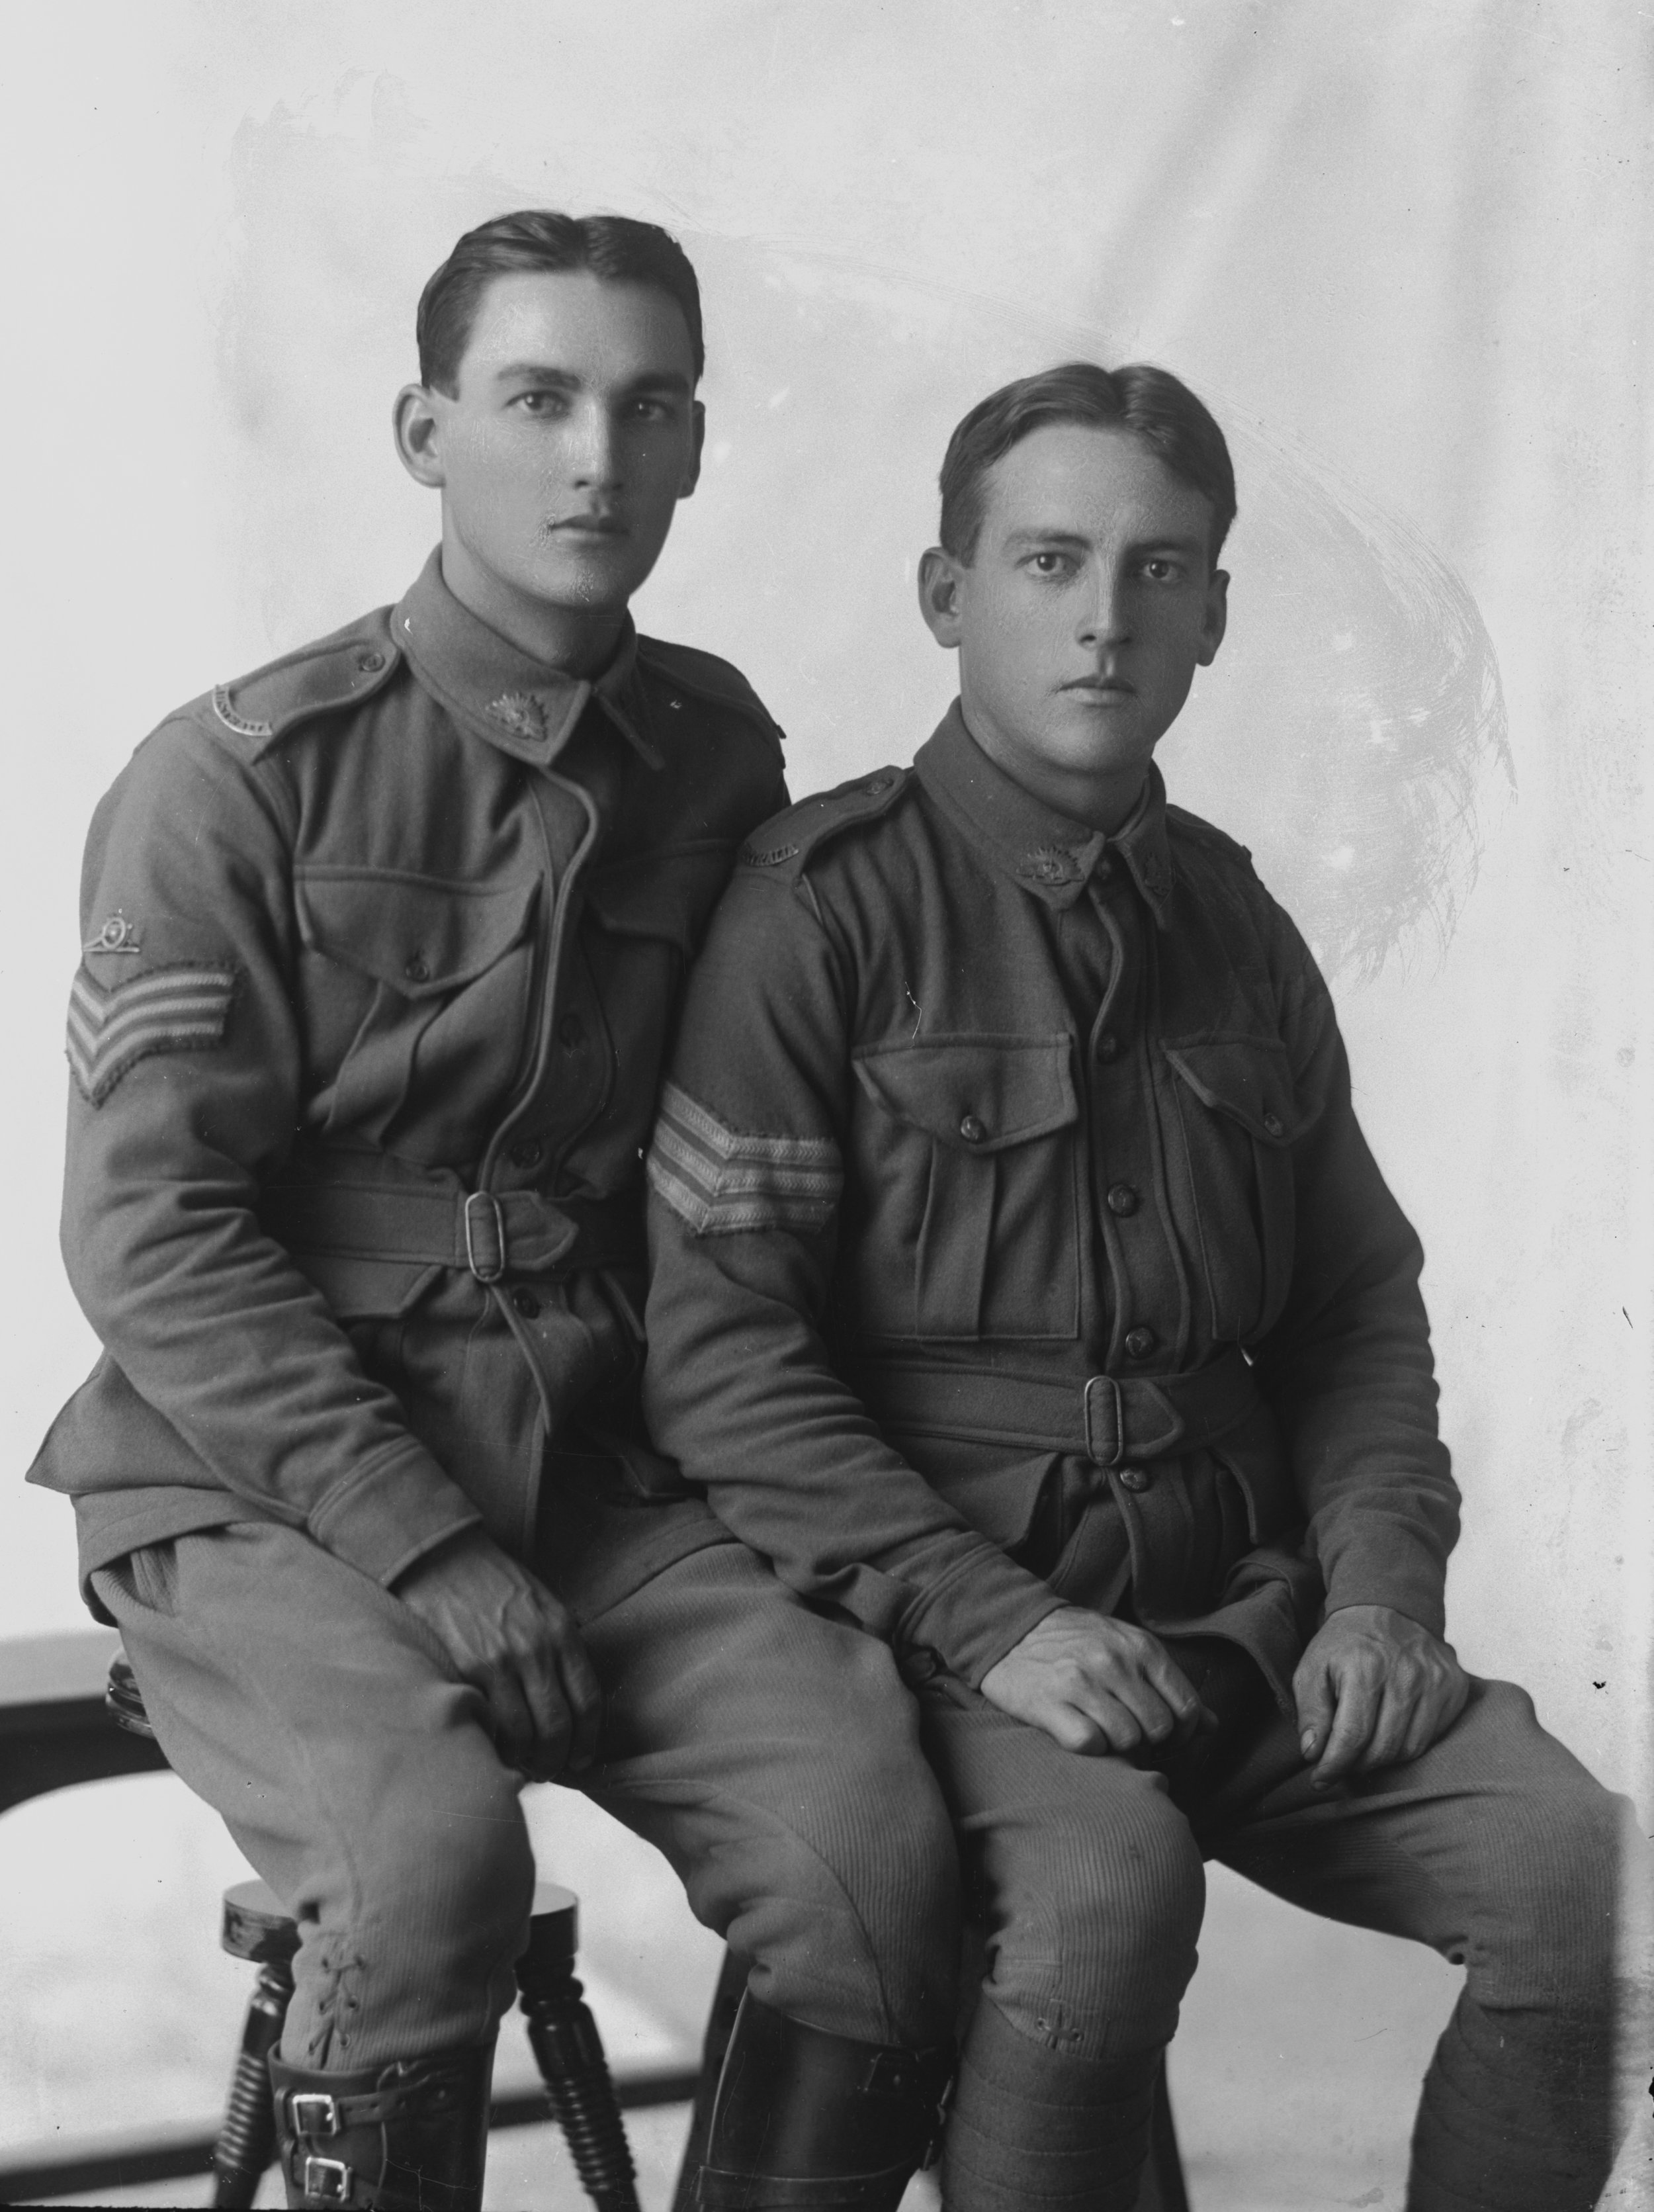 Photographed at the Dease Studio, 117 Barrack Street Perth WA Image courtesy of the State Library of Western Australia:108415PD